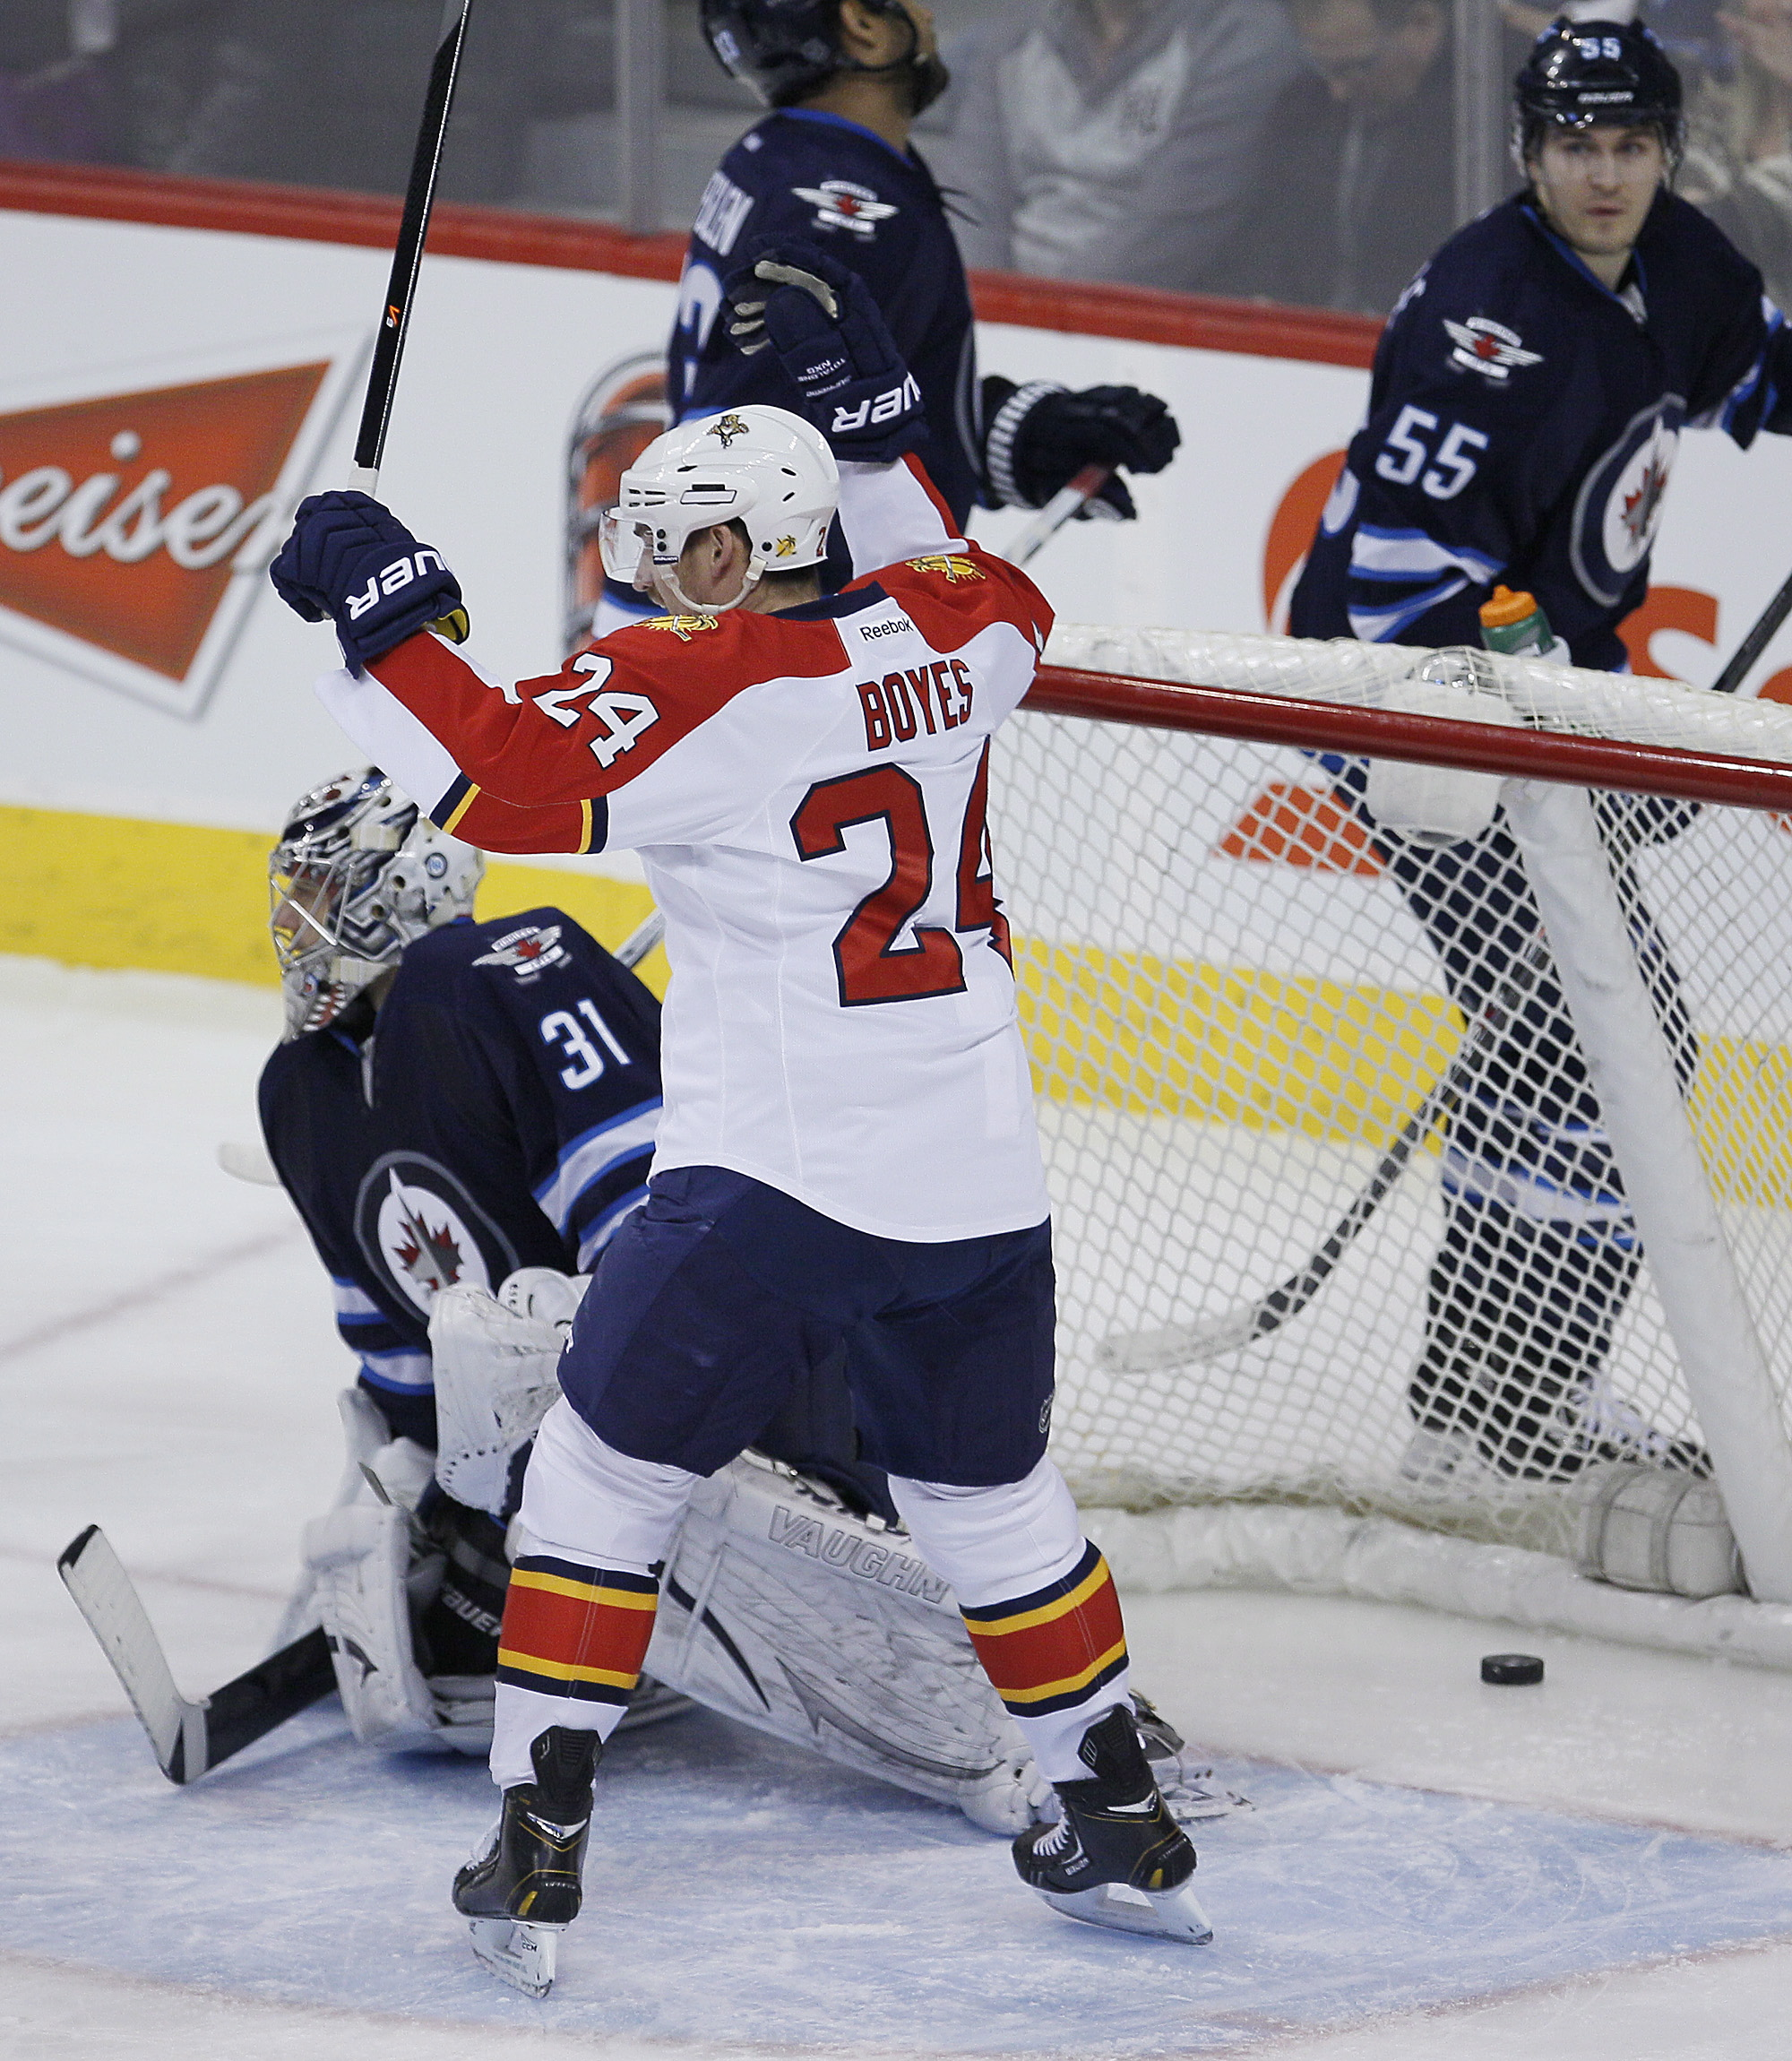 Florida Panthers' Brad Boyes (24) celebrates Shawn Matthias' (18) goal on Winnipeg Jets goaltender Ondrej Pavelec (31) as Jets' Dustin Byfuglien (33) and Mark Scheifele (55) skate by during the first period.